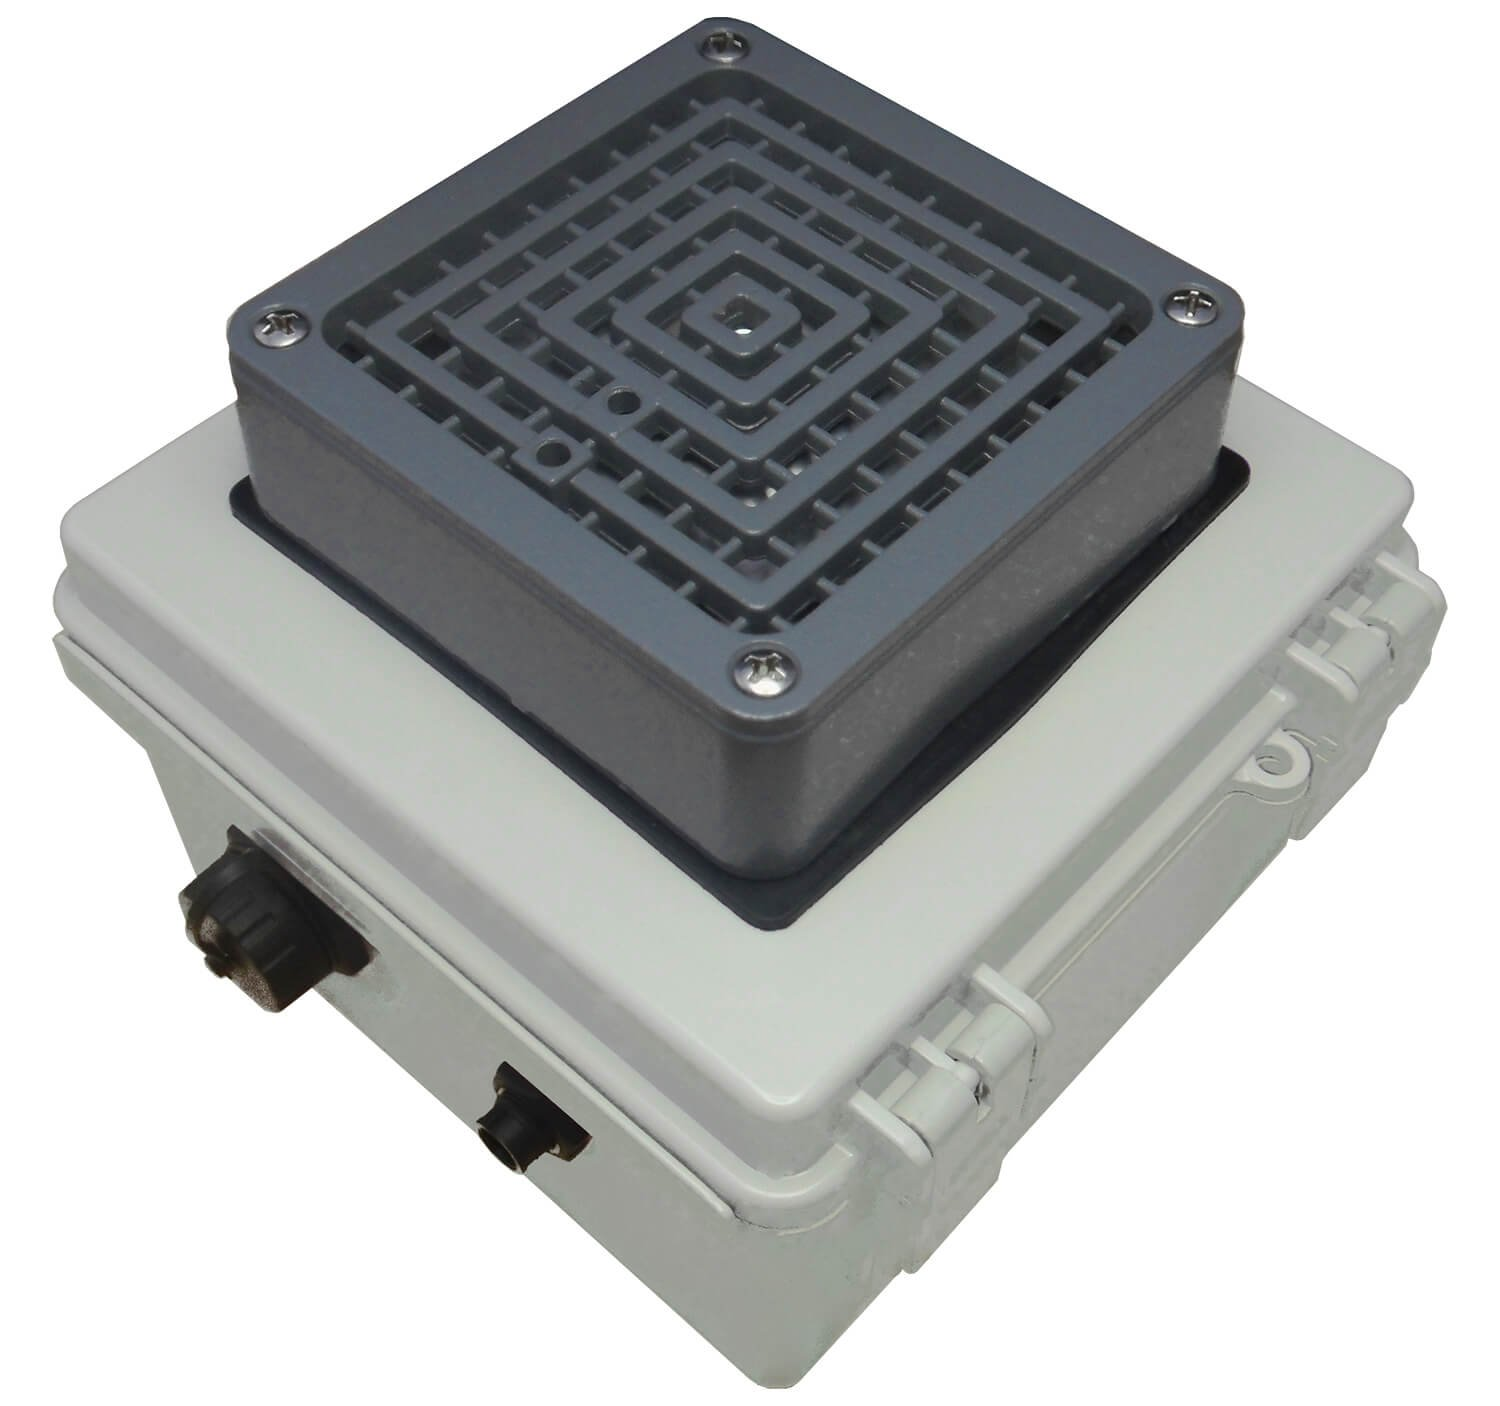 Linortek Netbell-KB Web-Based Self-Contained Break Buzzer System for Industrial Working Areas up to 25,000 sq. ft. by Linortek (Image #1)